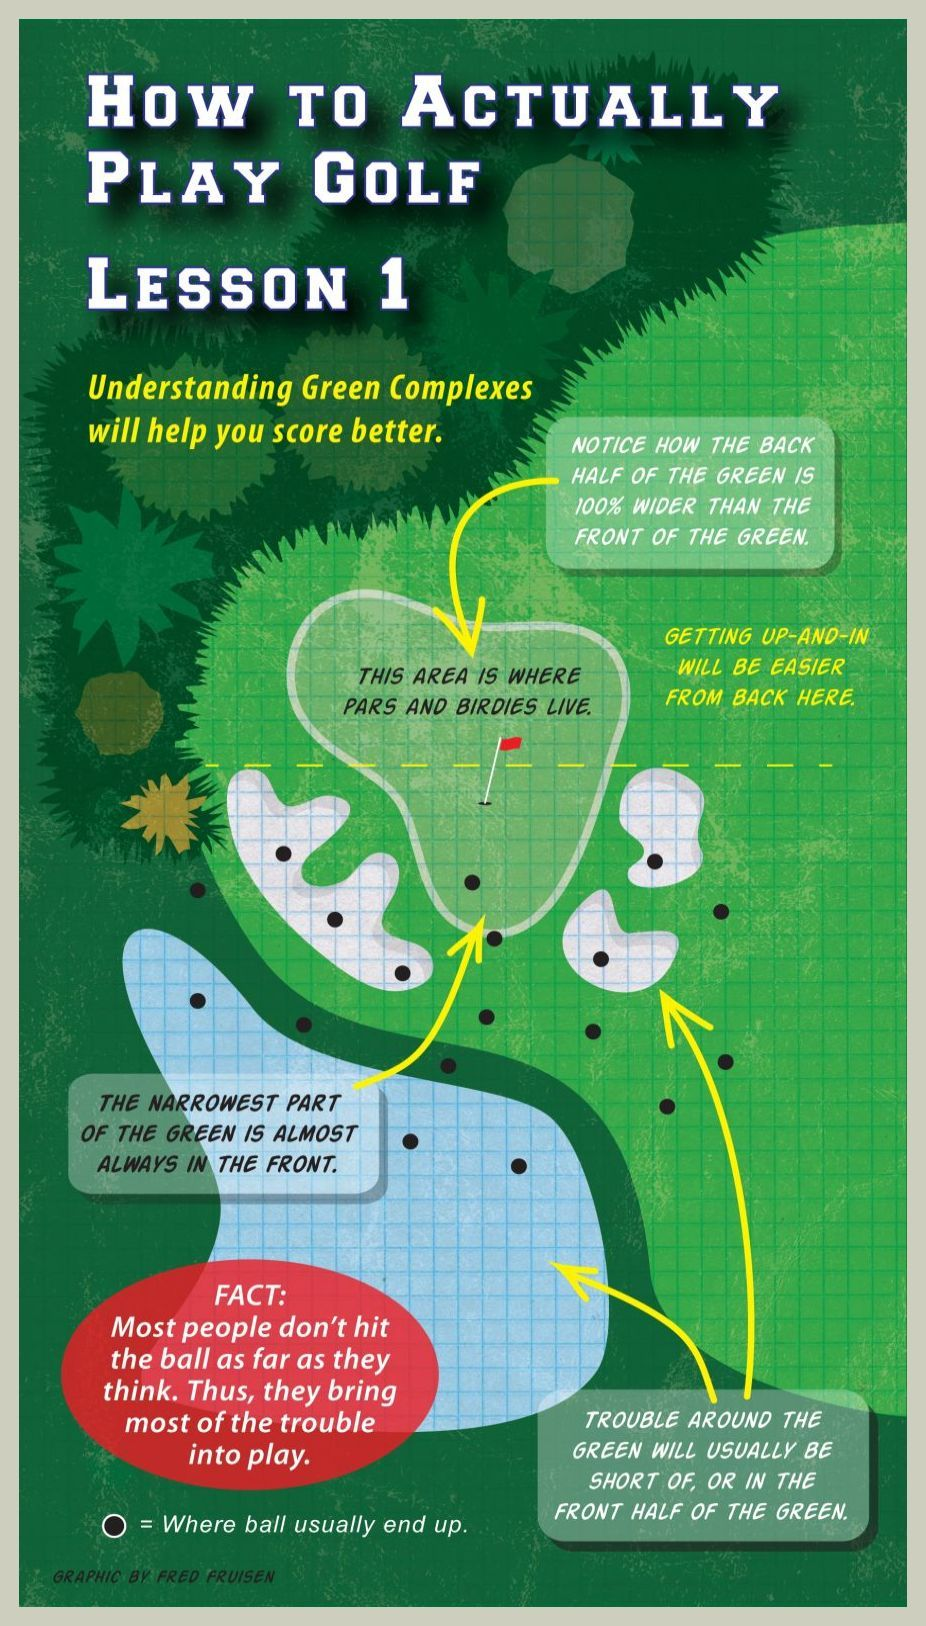 How To Play Golf The Best Way And Enjoy The Game Golf Lessons How To Get Better Golf Swi Golf Lessons Play Golf Golf Lessons For Kids